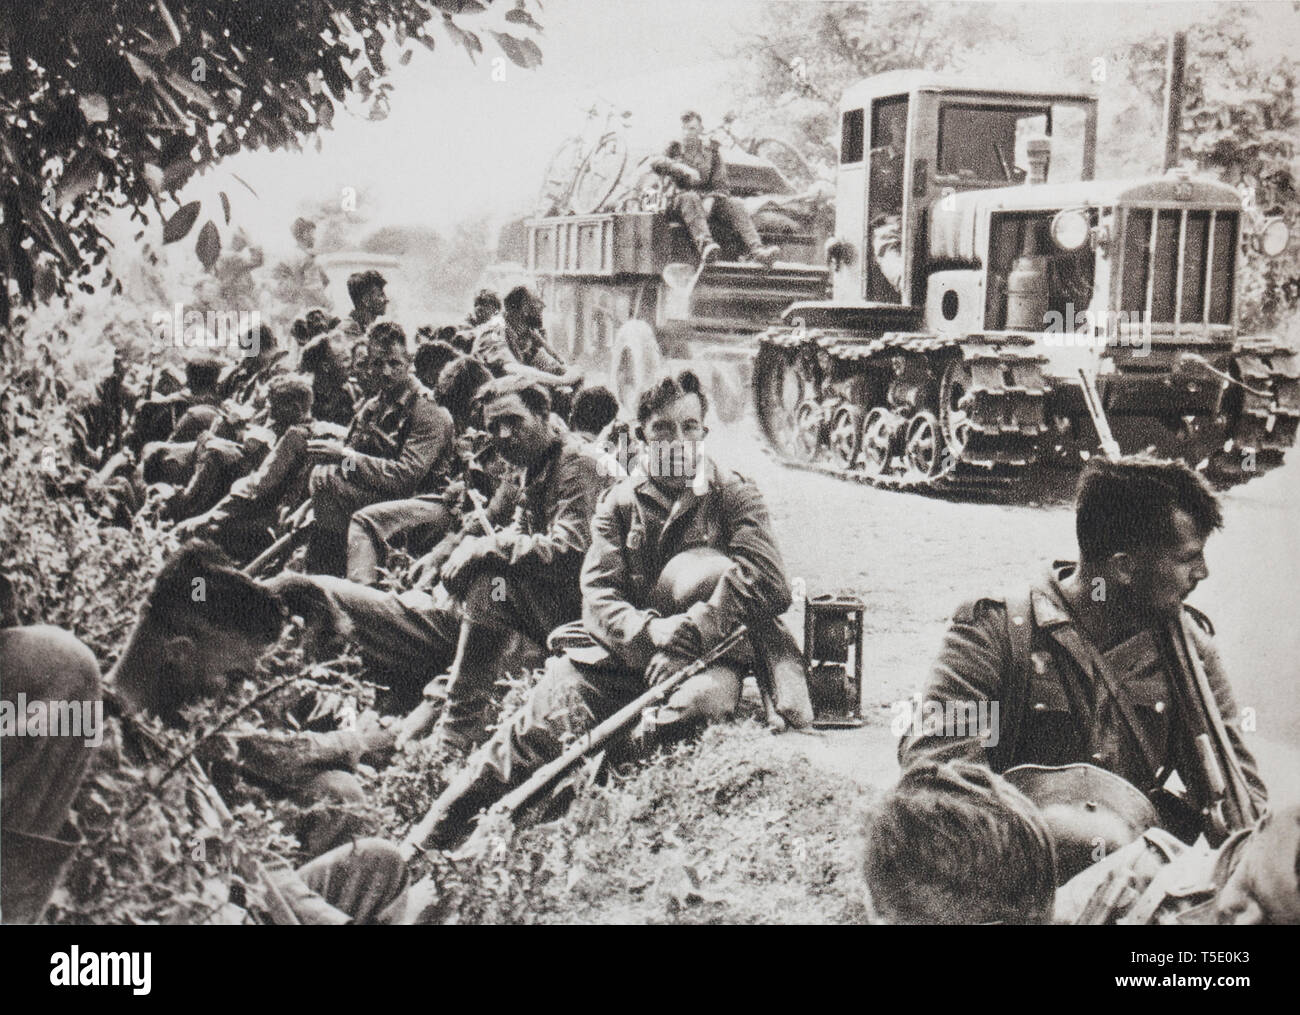 German infantry at rest on a road from Ukraine (1941). It meets in front of it only a country mercilessly damaged by the Russians. - Stock Image